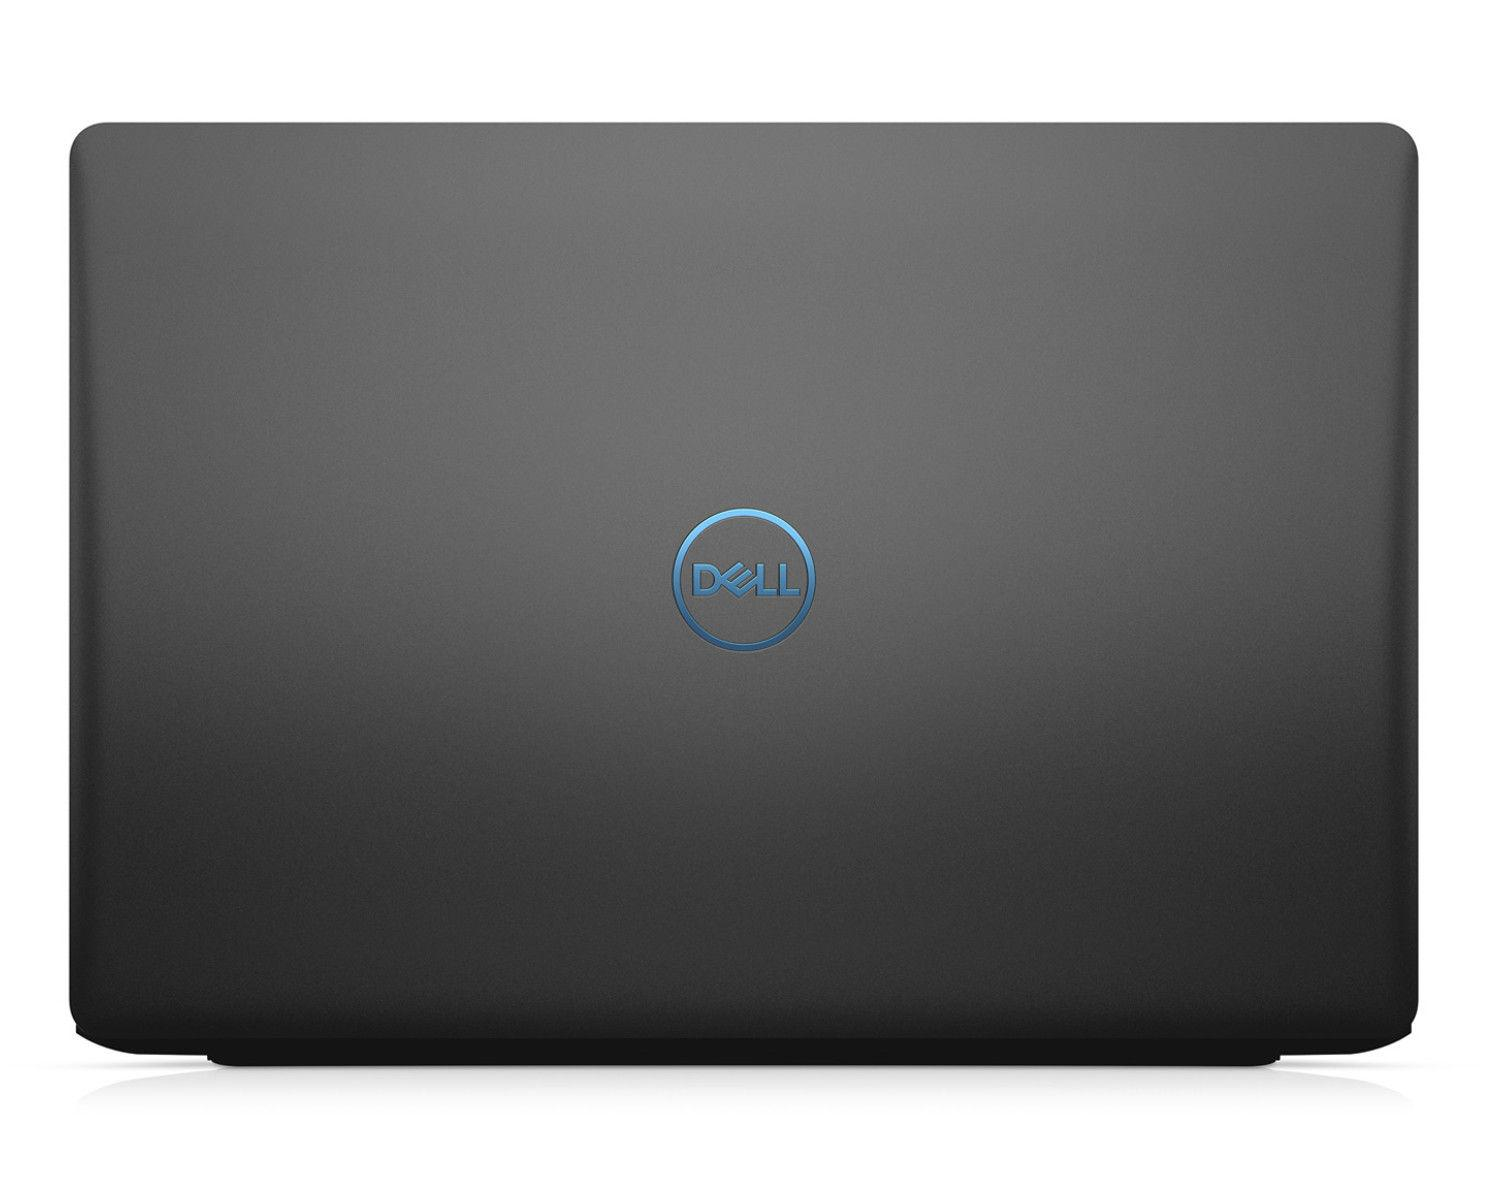 Ordinateur portable Dell Inspiron Gaming G3 17 3779 1901 (LOKI-G-17CFL1901-209-P) Noir - GTX 1060, SSD, i5 - photo 7